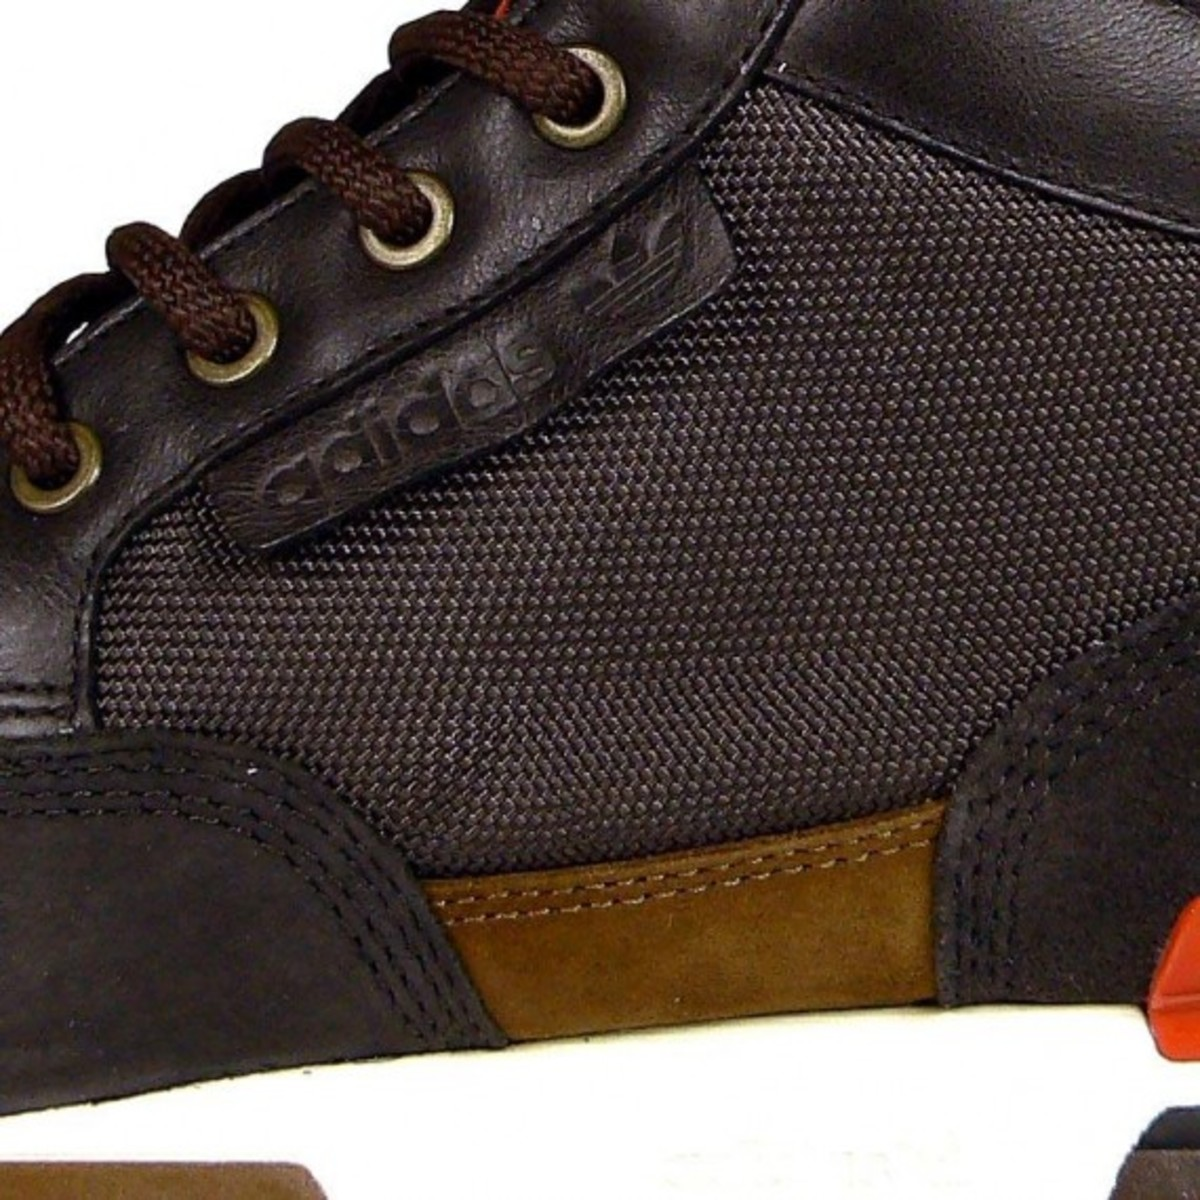 adidas-zx700-boat-winter-boot-hi-03